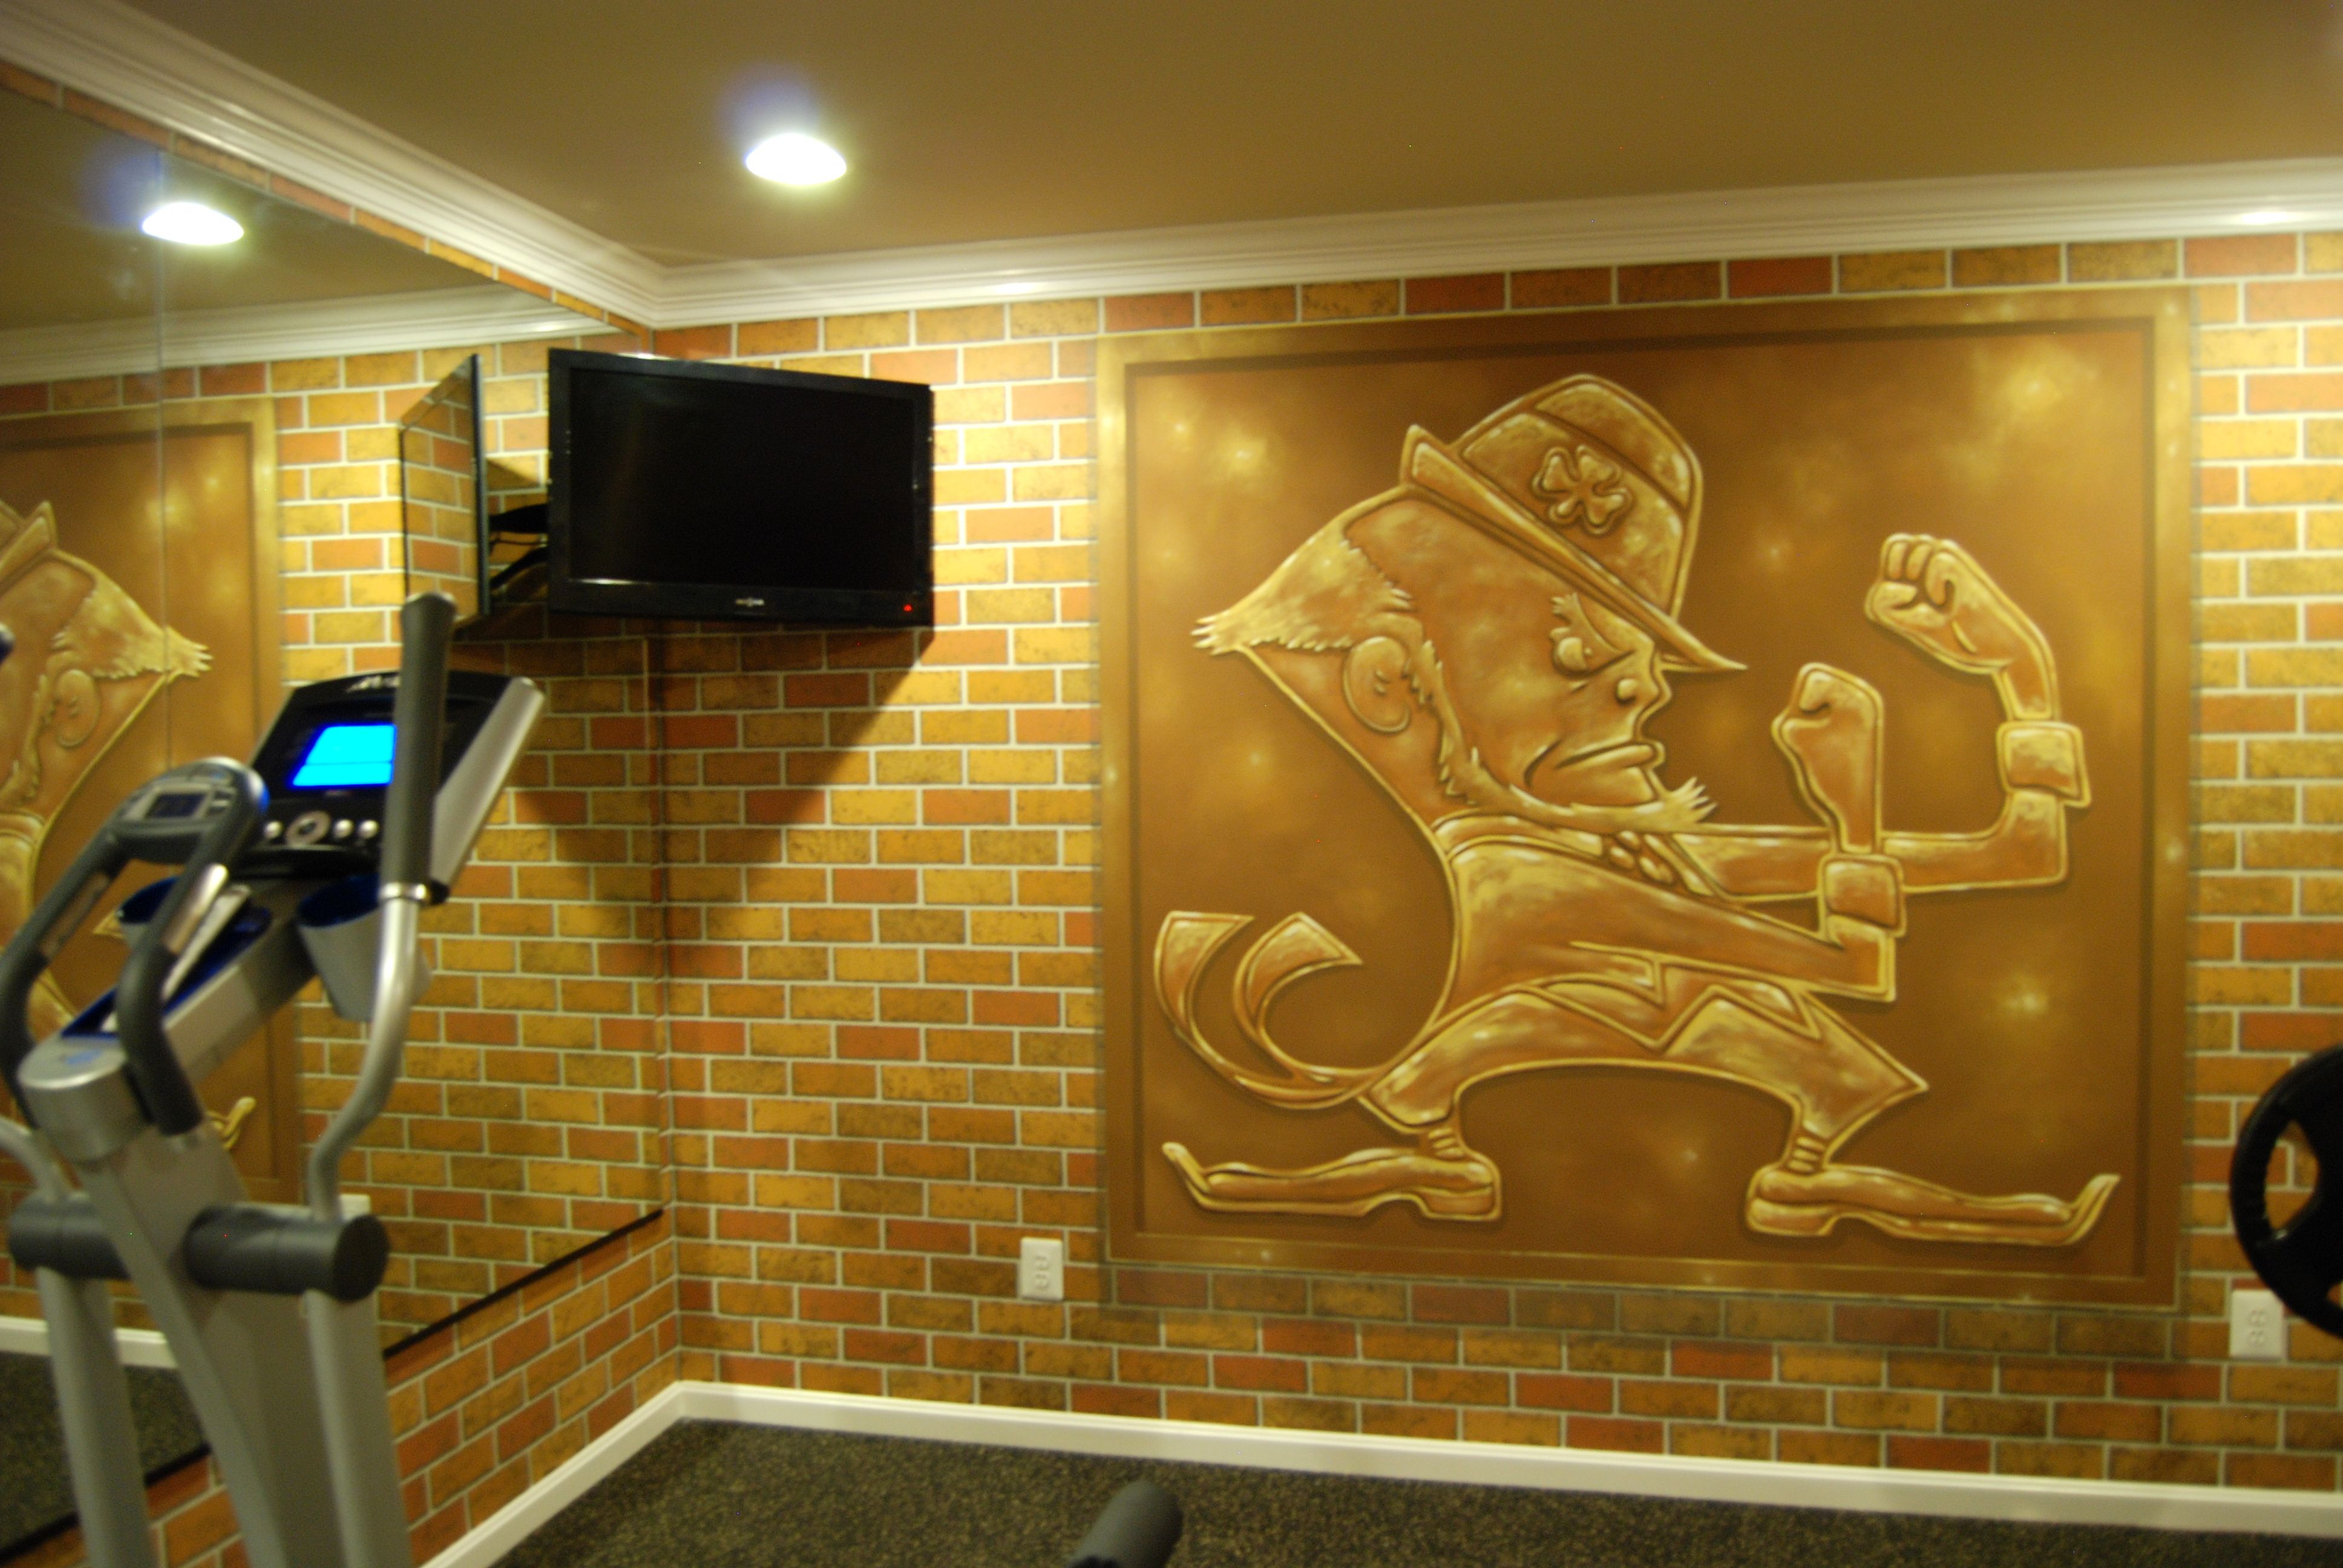 Notre Dame Man Cave Ideas : Notre dame football locker room mural by tom taylor of wow